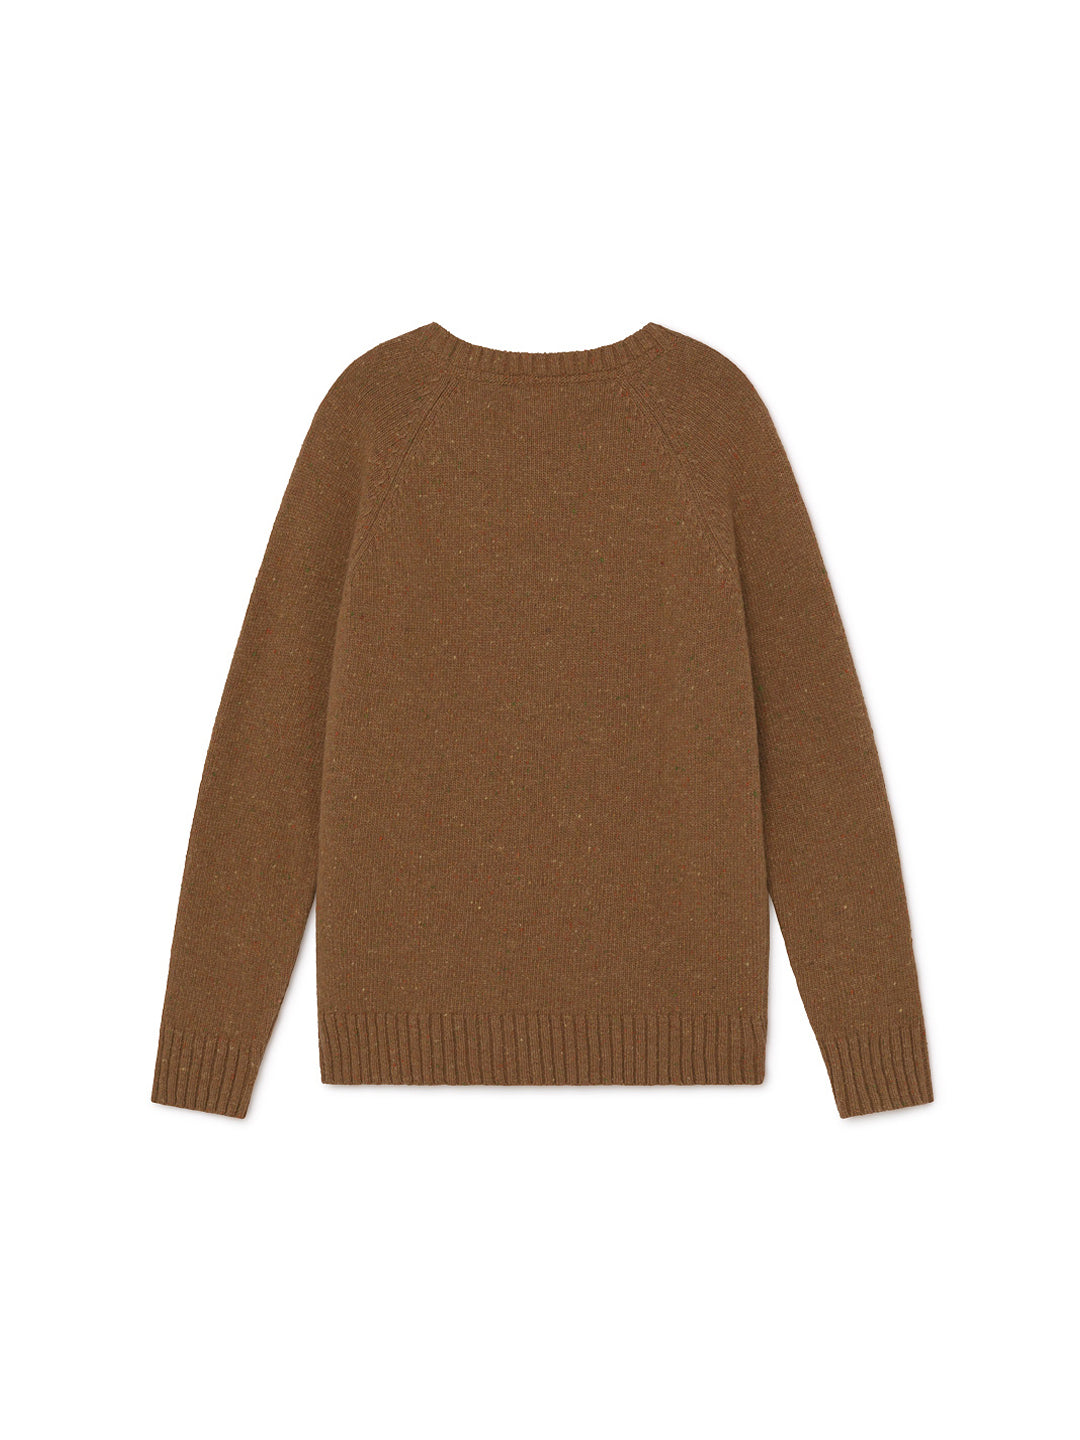 TWOTHIRDS Womens Knit: Agpat - Pecan back